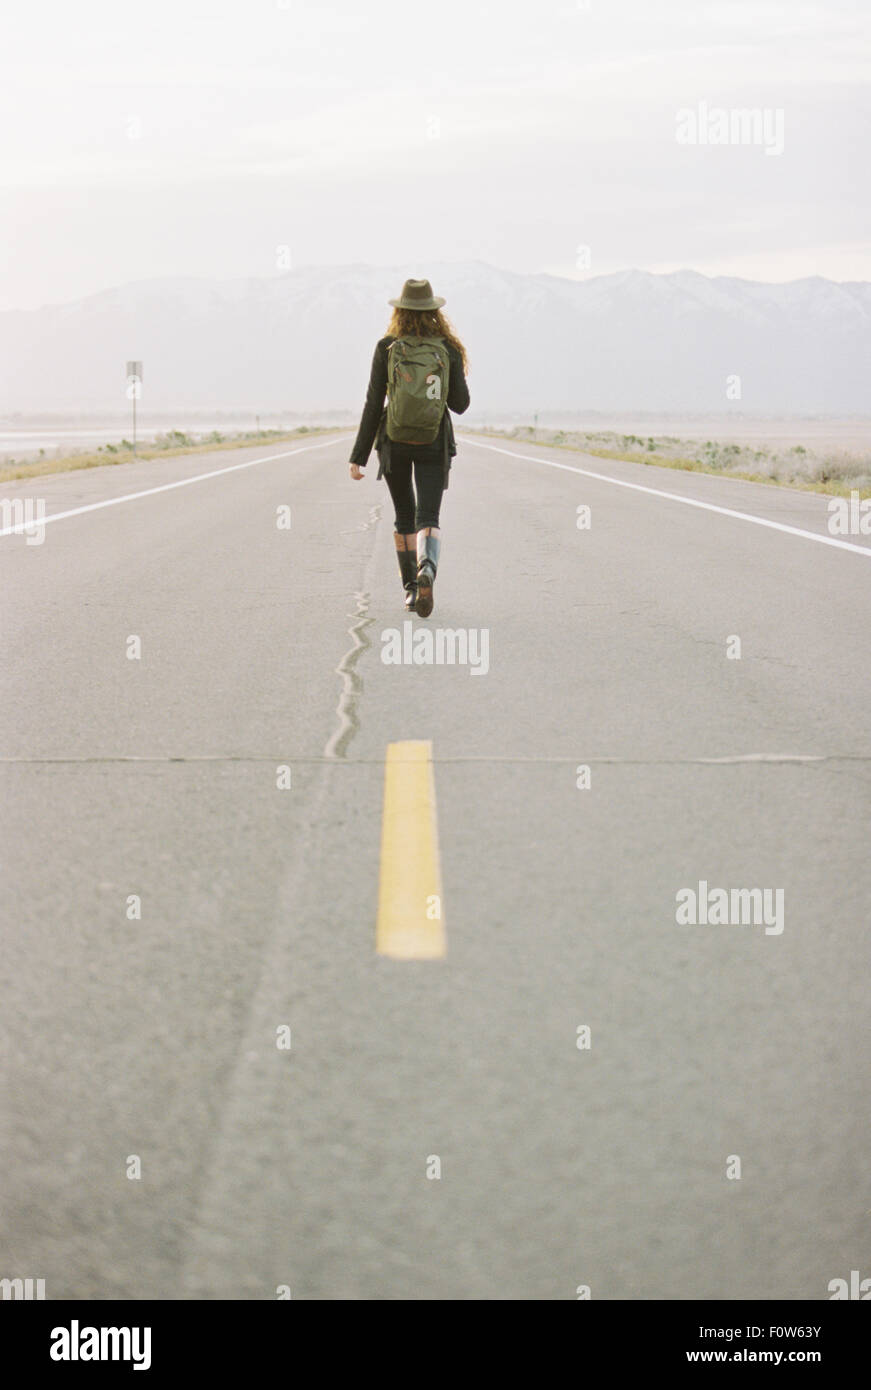 A woman carrying a backpack walking down the centre line of a  country road. - Stock Image